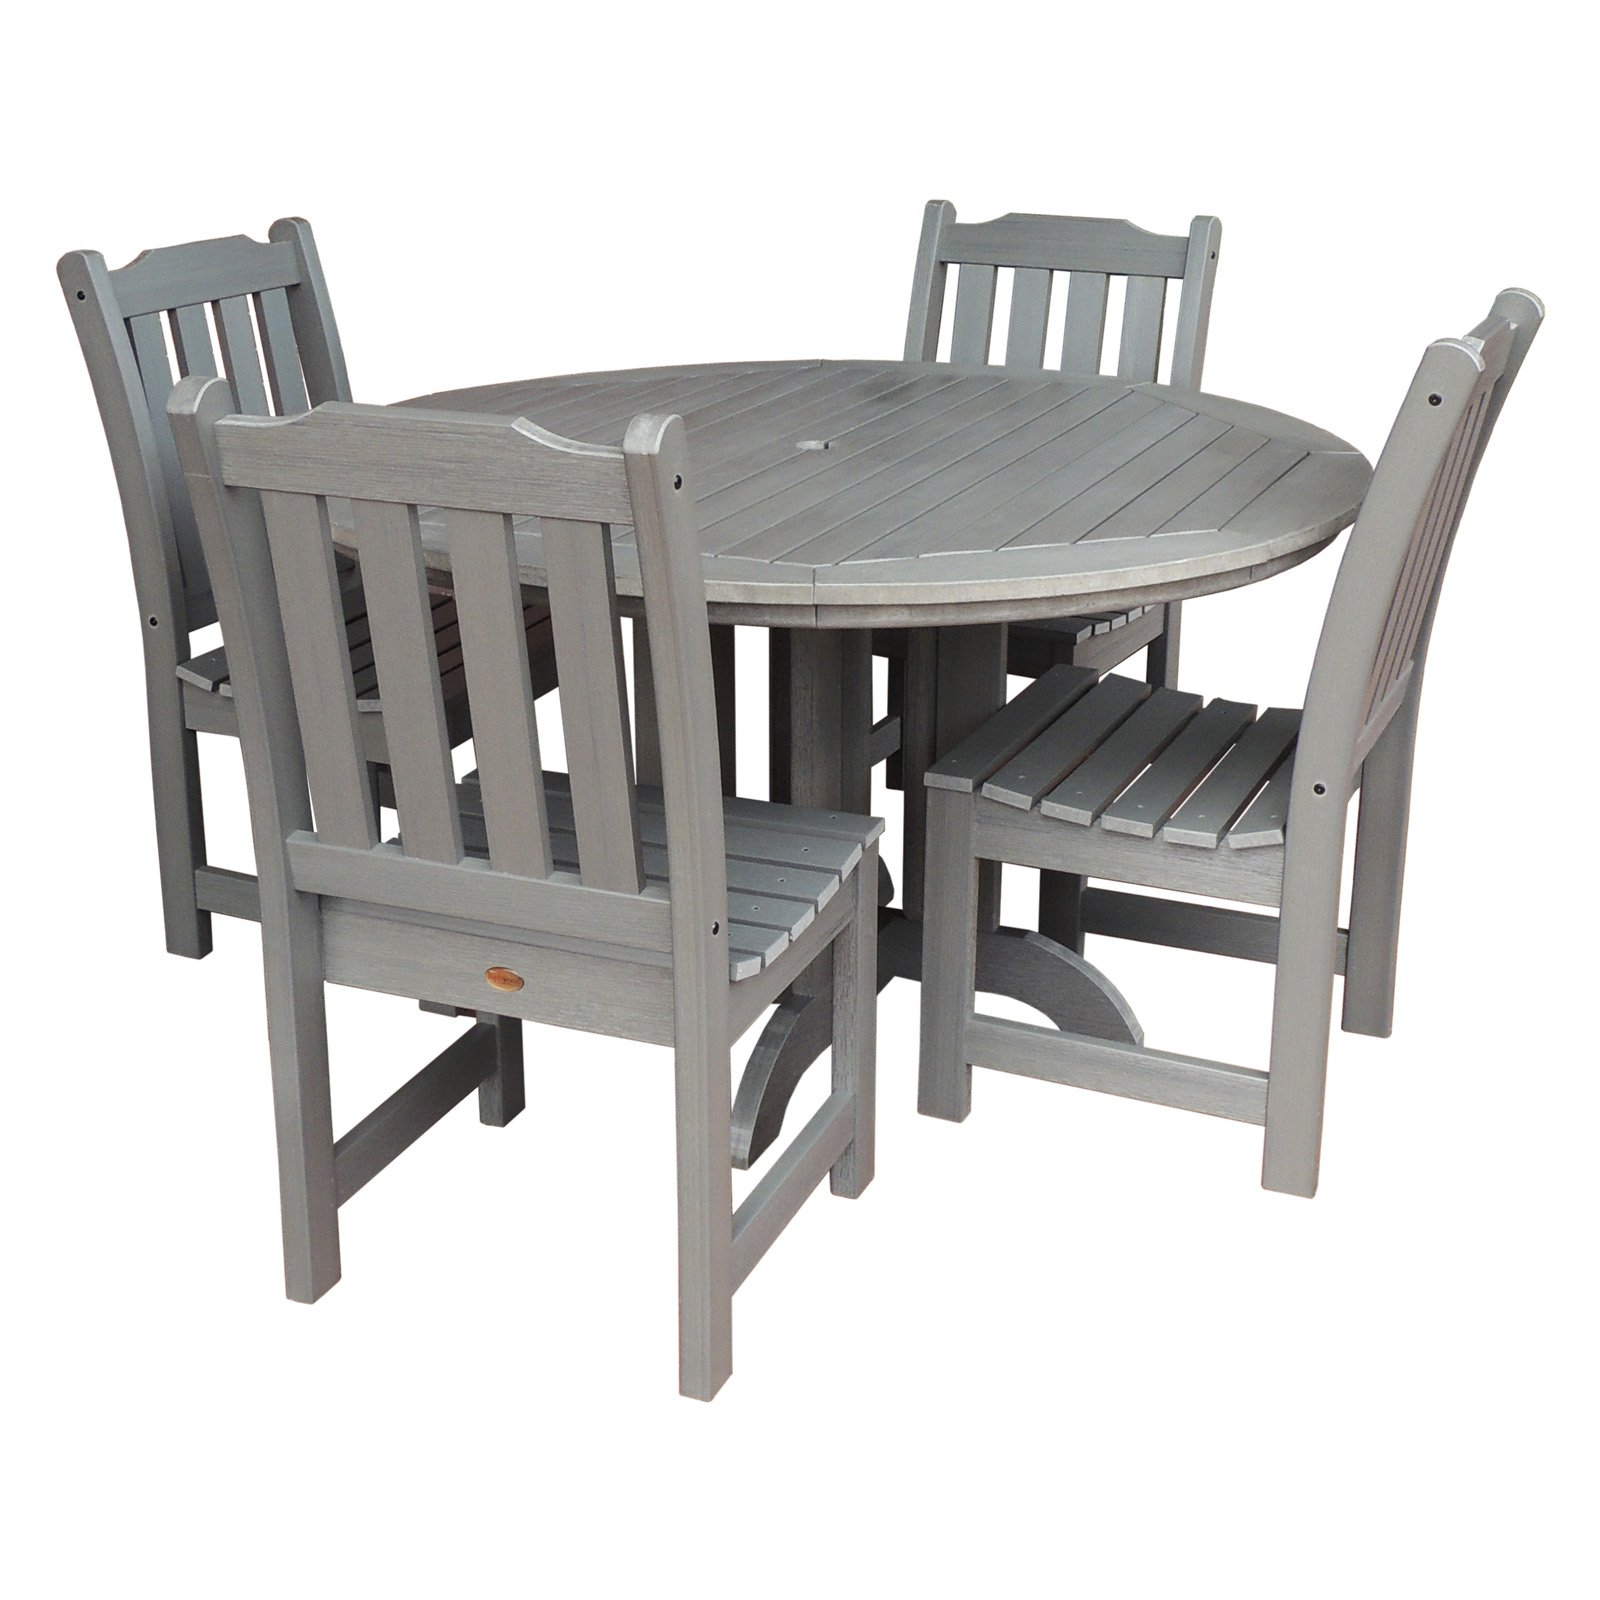 Highwood Patio Furniture.Outdoor Highwood Lehigh Recycled Plastic 5 Piece Round Patio Dining